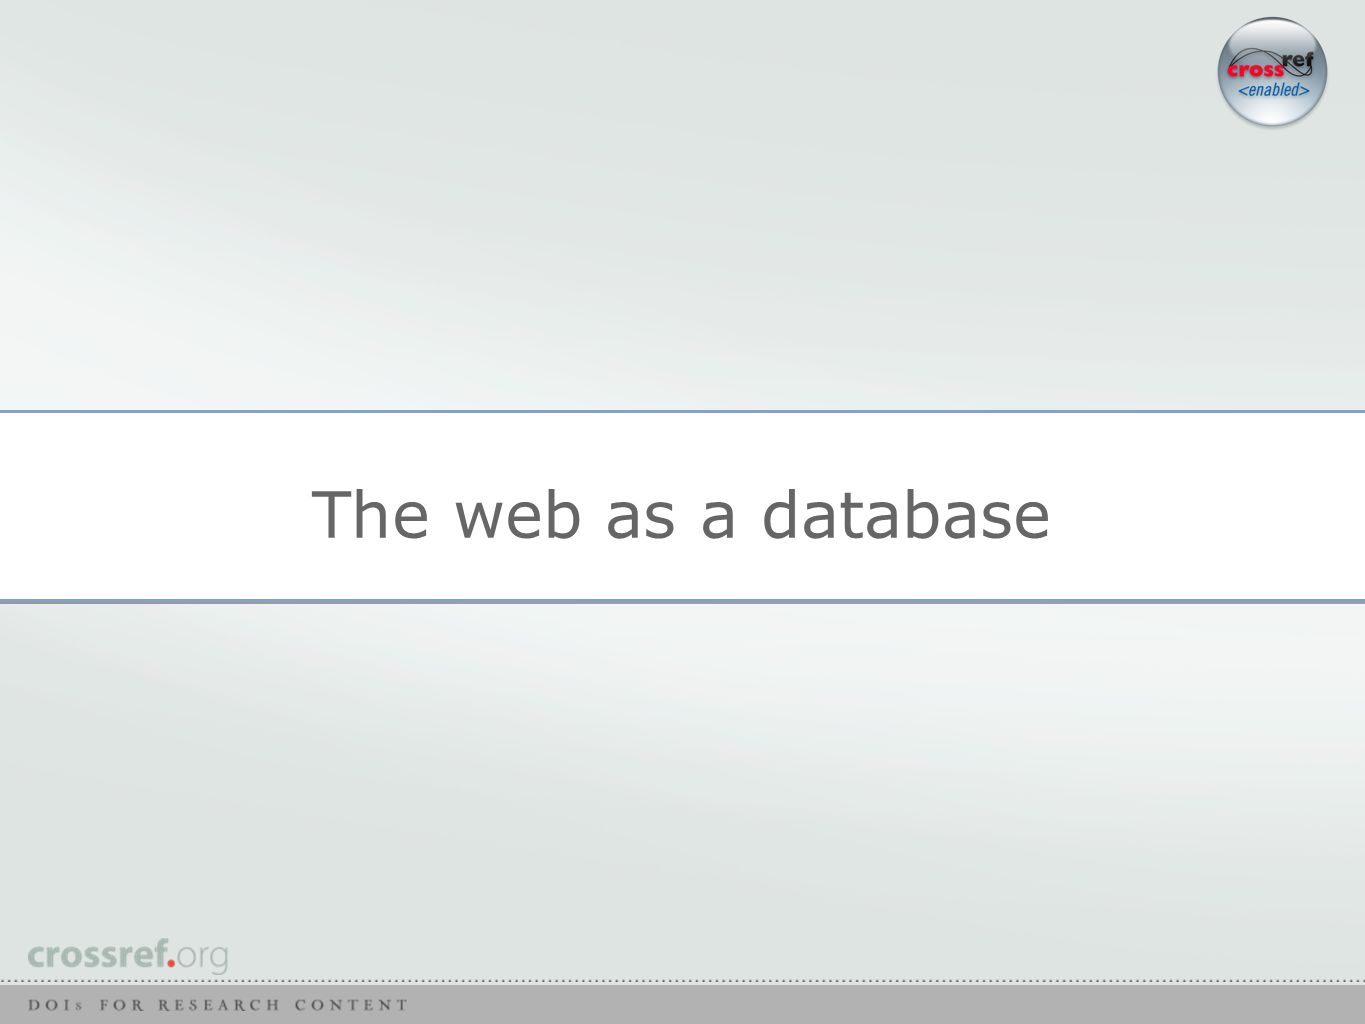 The web as a database